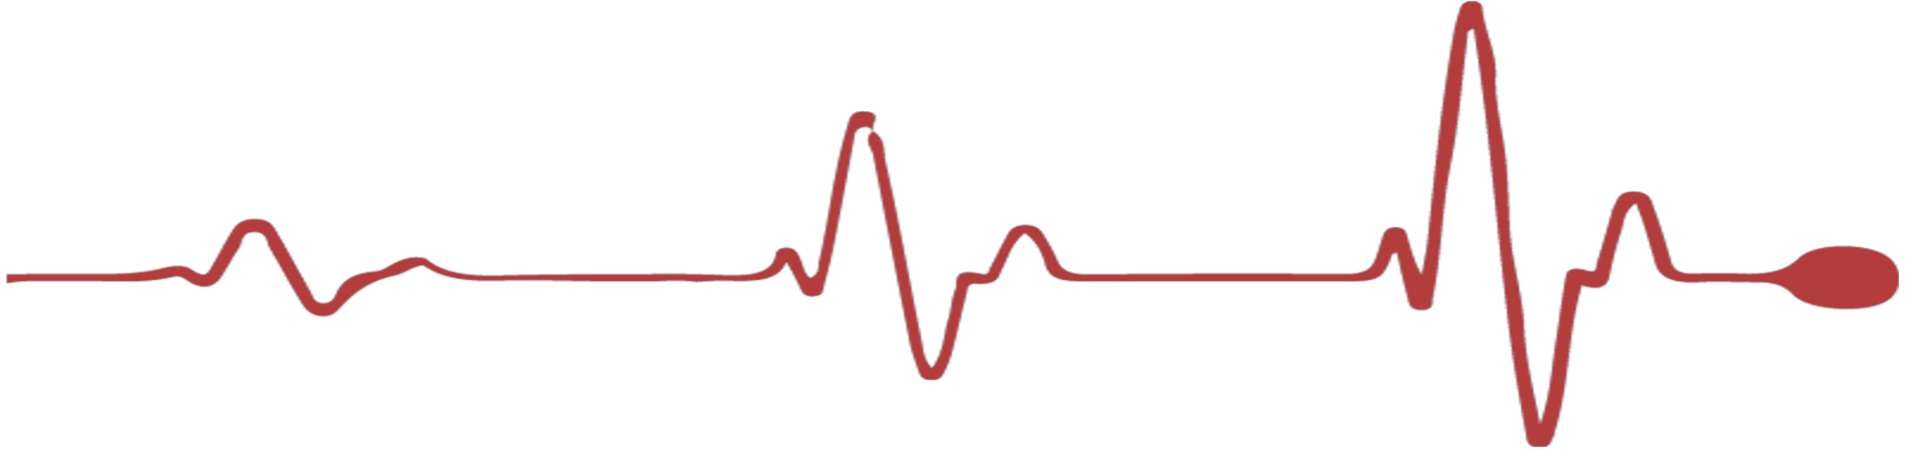 Heartbeat Line Art : Heartbeat line clipart black and white png clipground